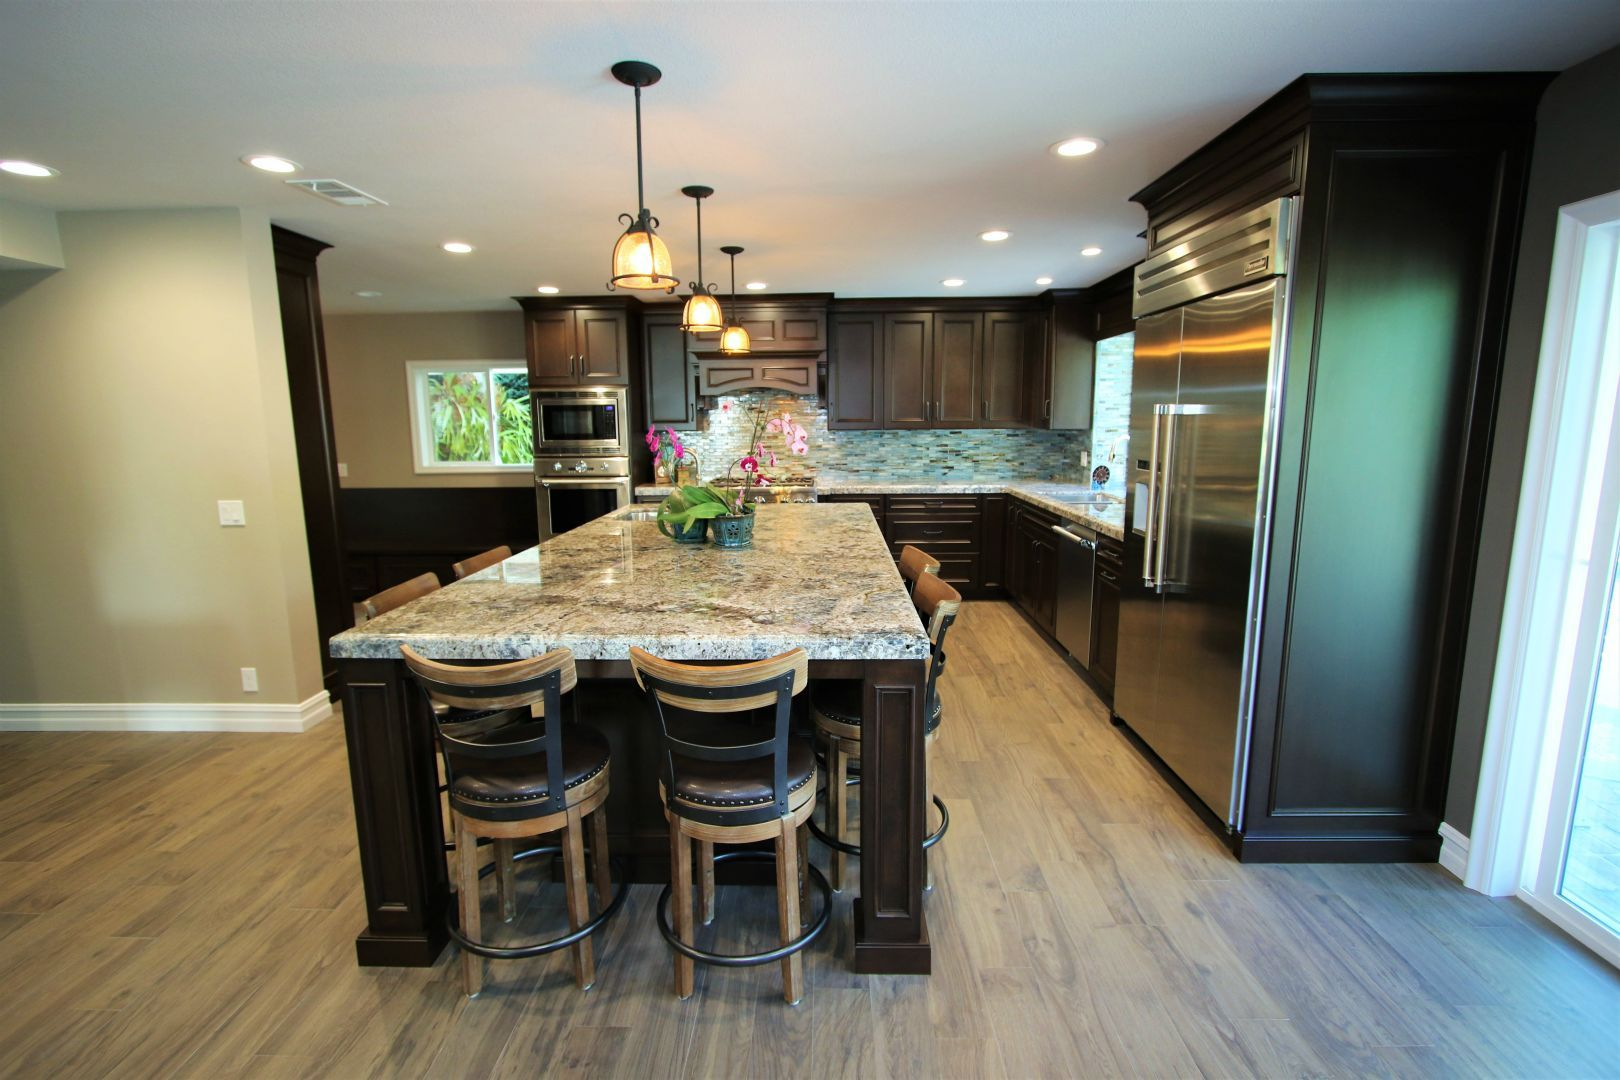 Design Build Traditional Kitchen Remodel In Laguna Hills With Aplus Home Remodeling Traditional Kitchen Remodel Traditional Kitchen Kitchen Remodel